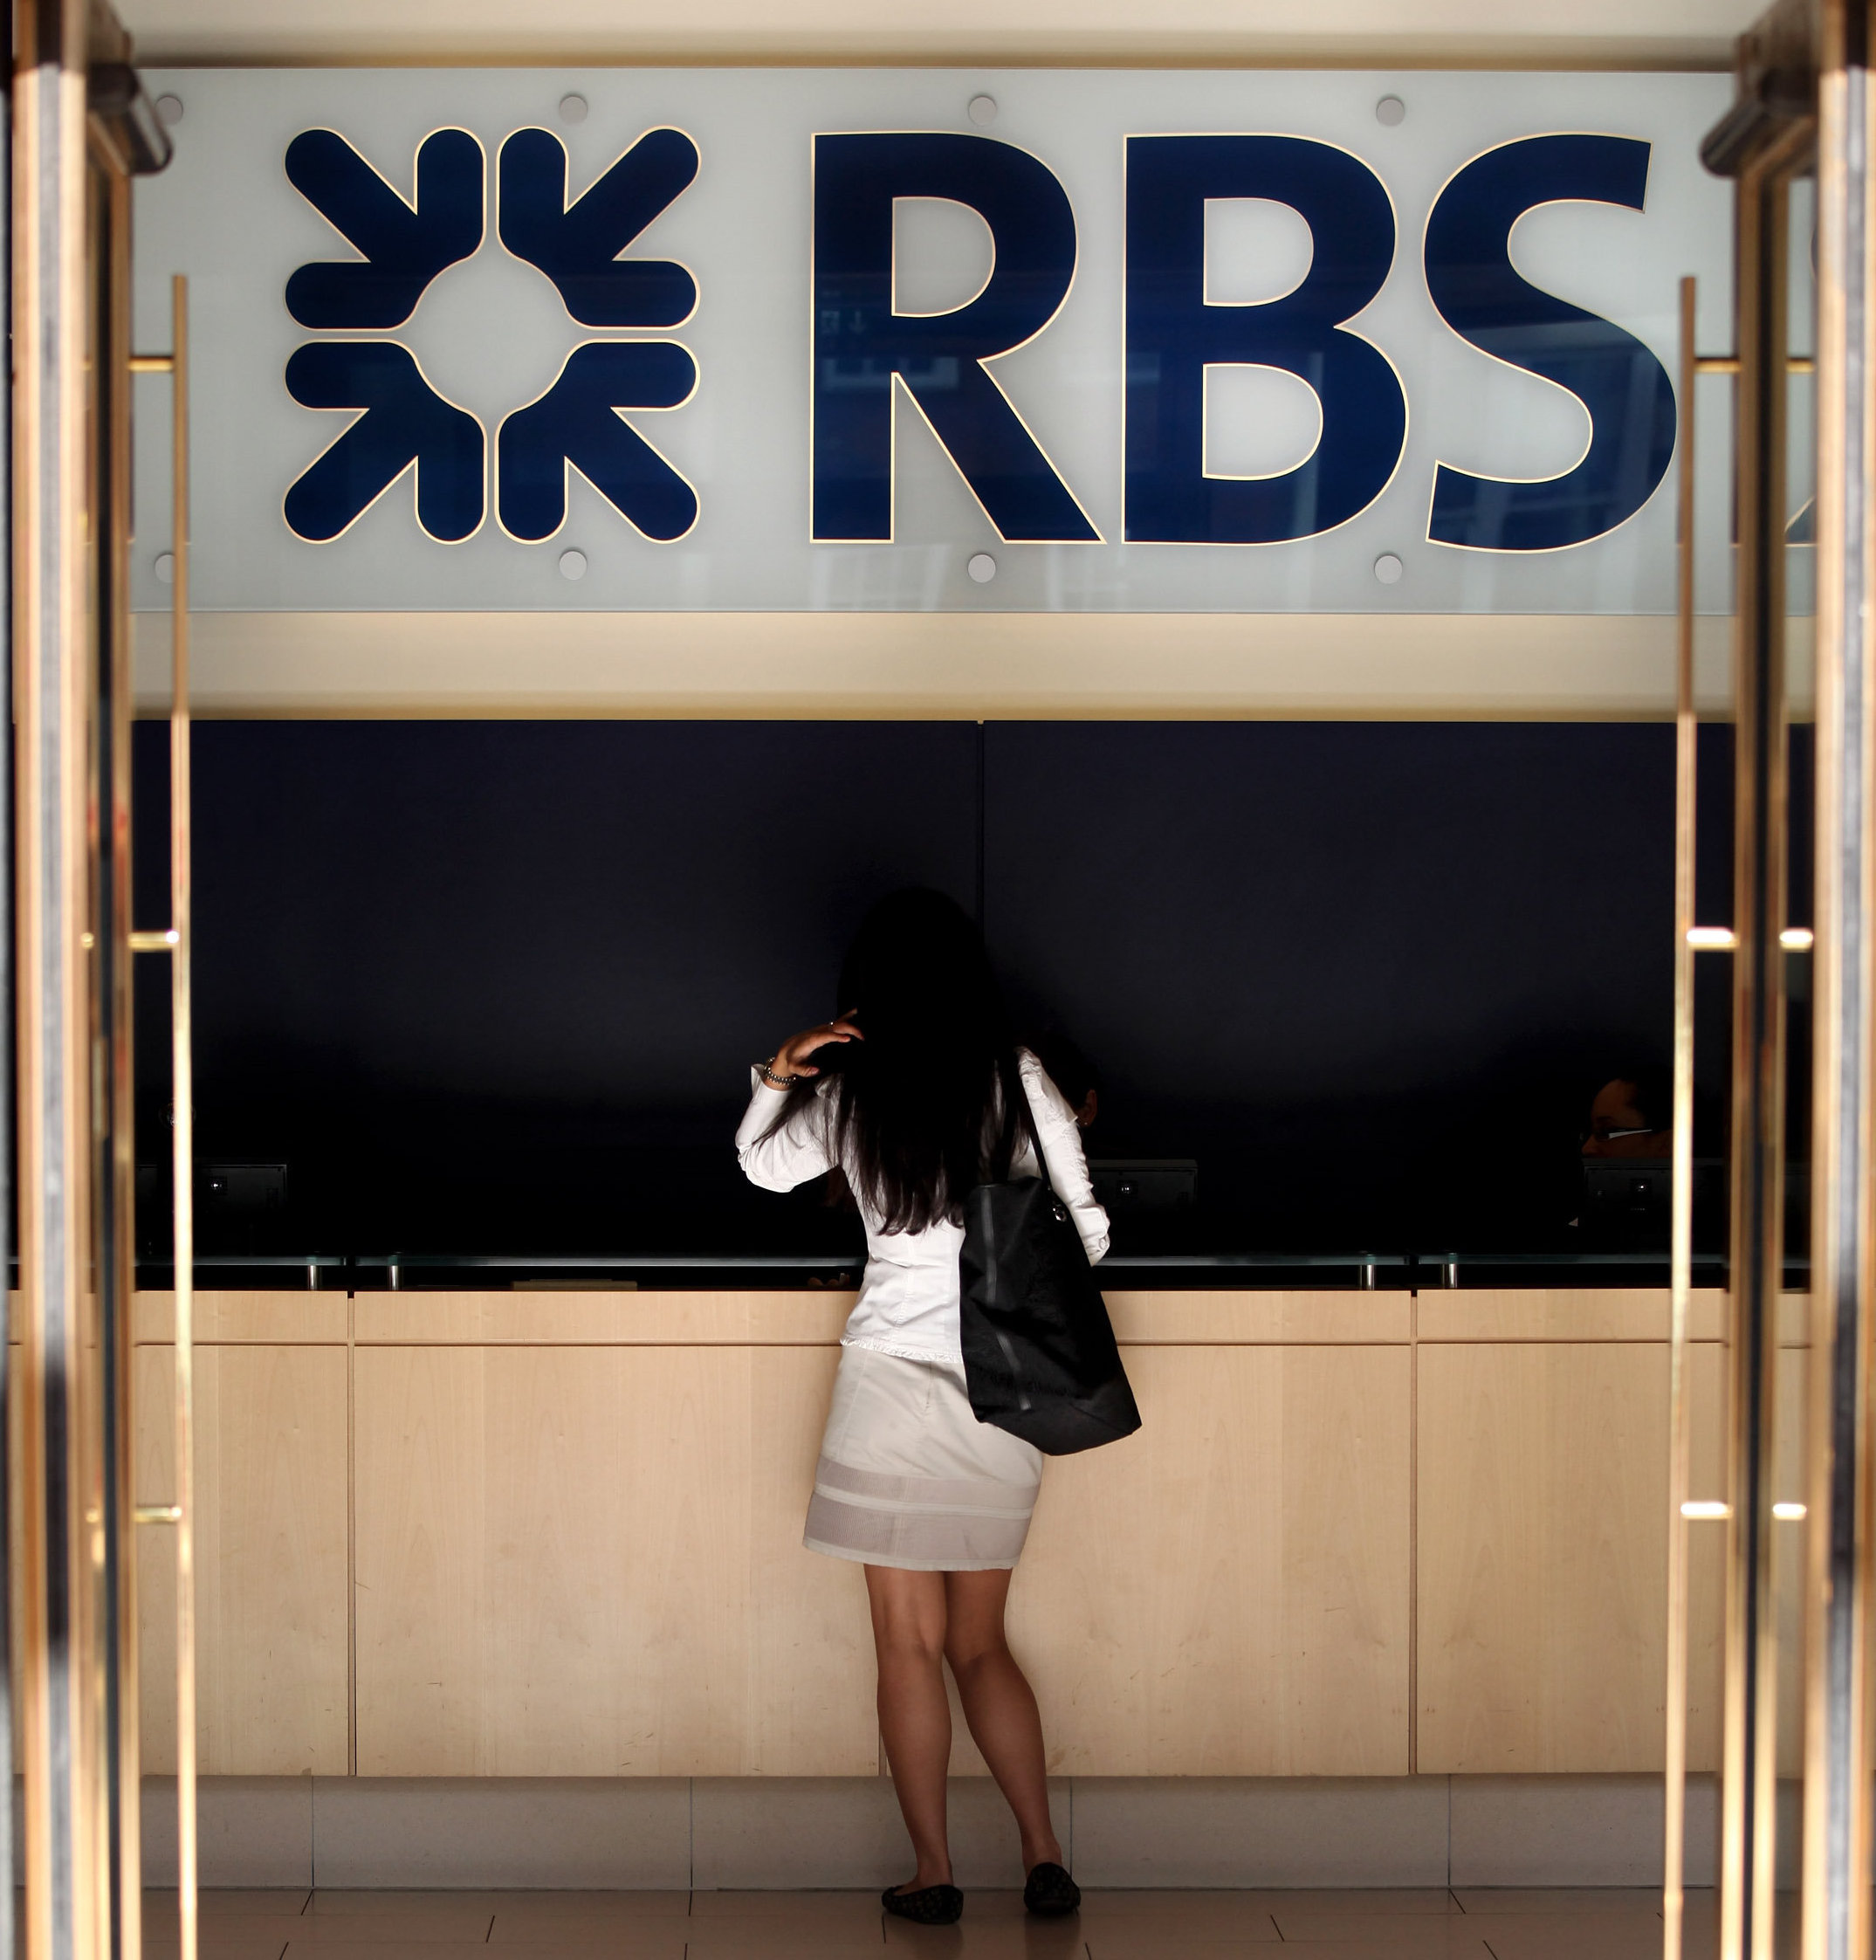 RBS has announced proposals to close 62 branches in Scotland, including some in remote communities